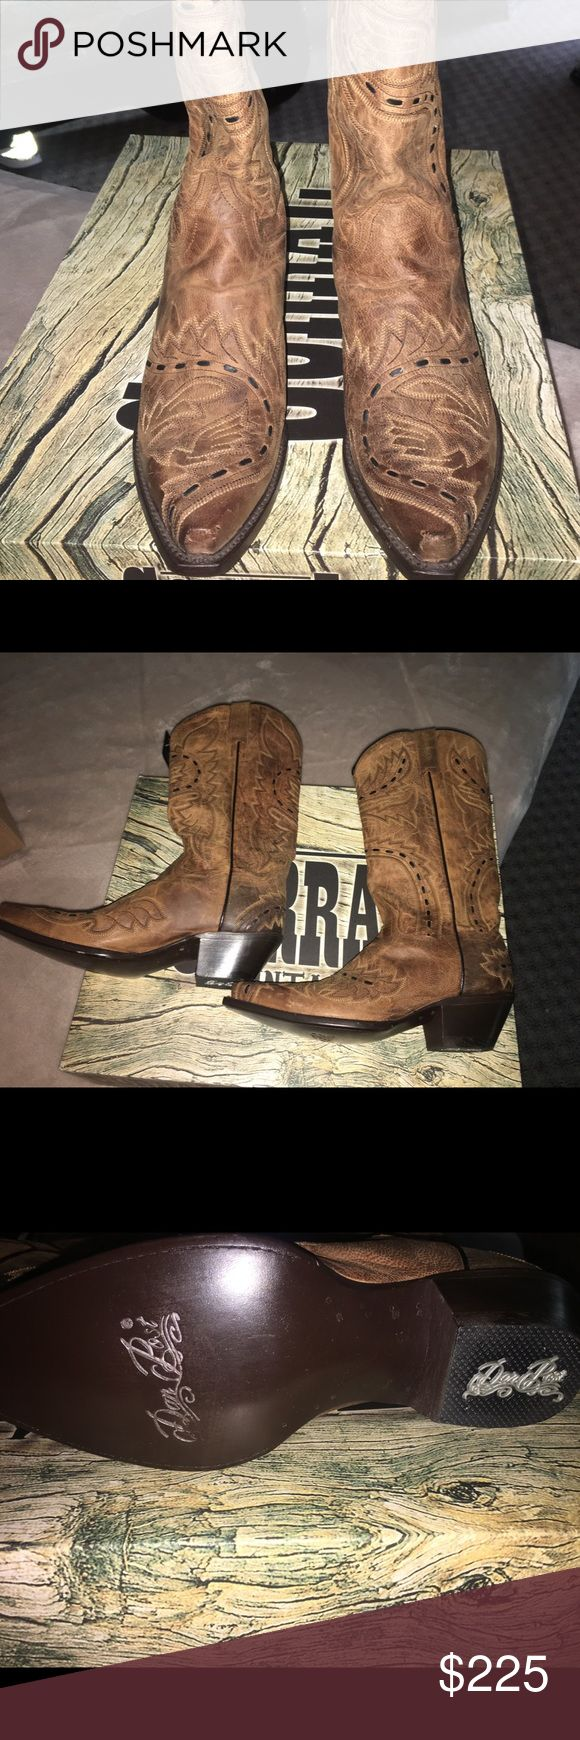 BRAND NEW SIZE 8 Dan Post cowboy boots BRAND NEW SIZE 8 Dan Post cowboy boots! Never been worn. Still in bag in the box. Paid $299.00 Dan Post Shoes Heeled Boots